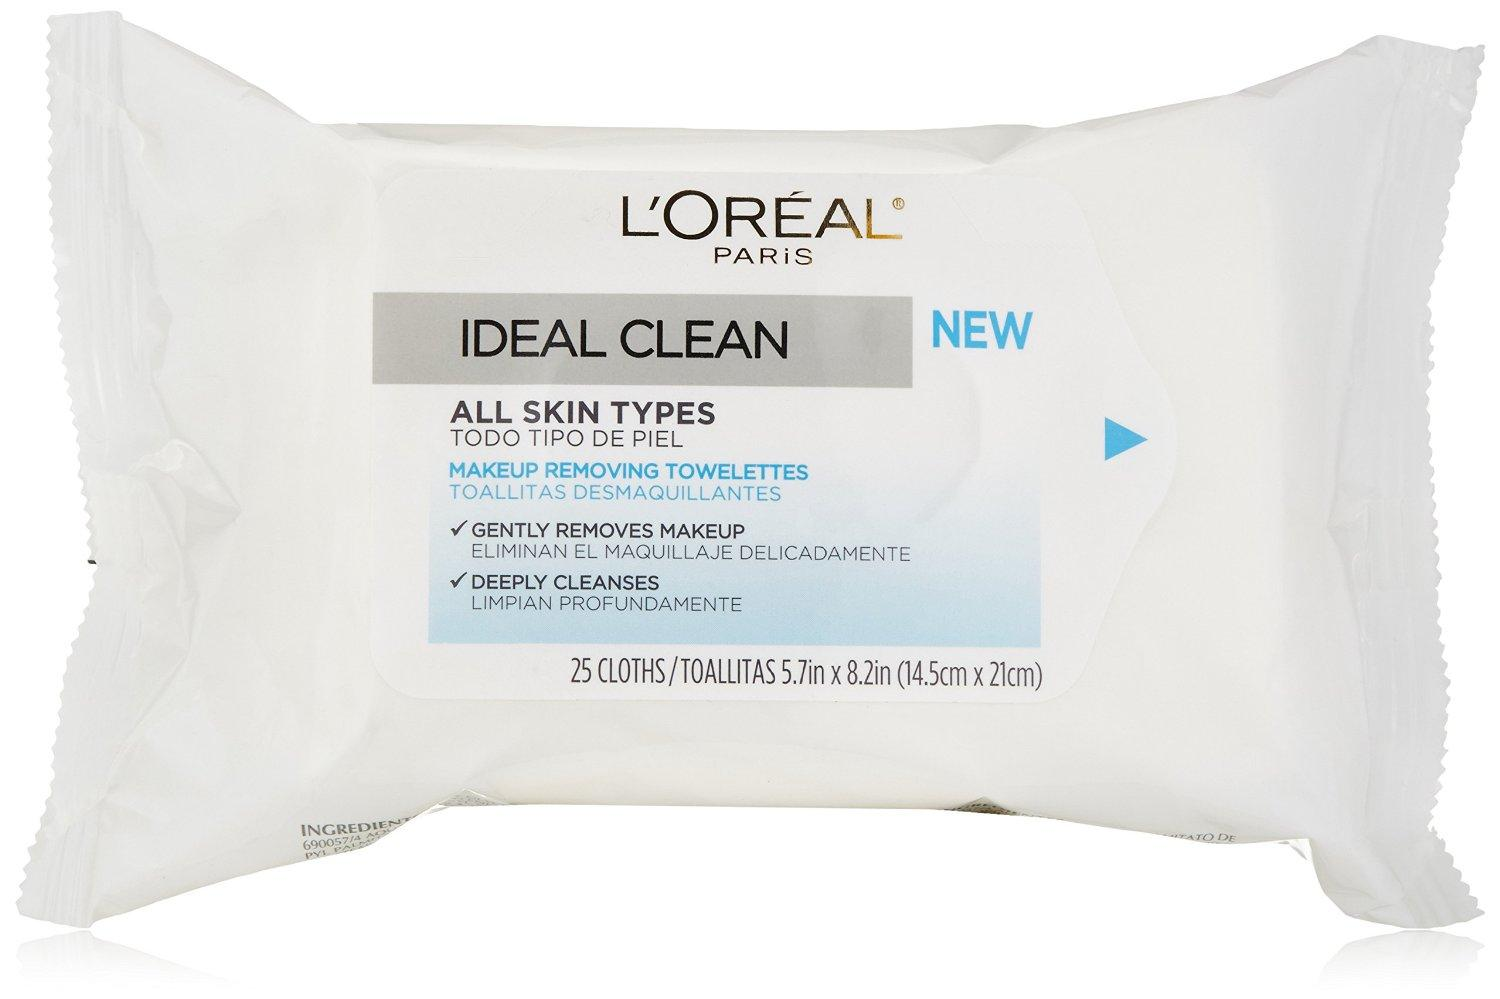 $3.49 L'Oreal Ideal Clean Towelettes, 25 Count